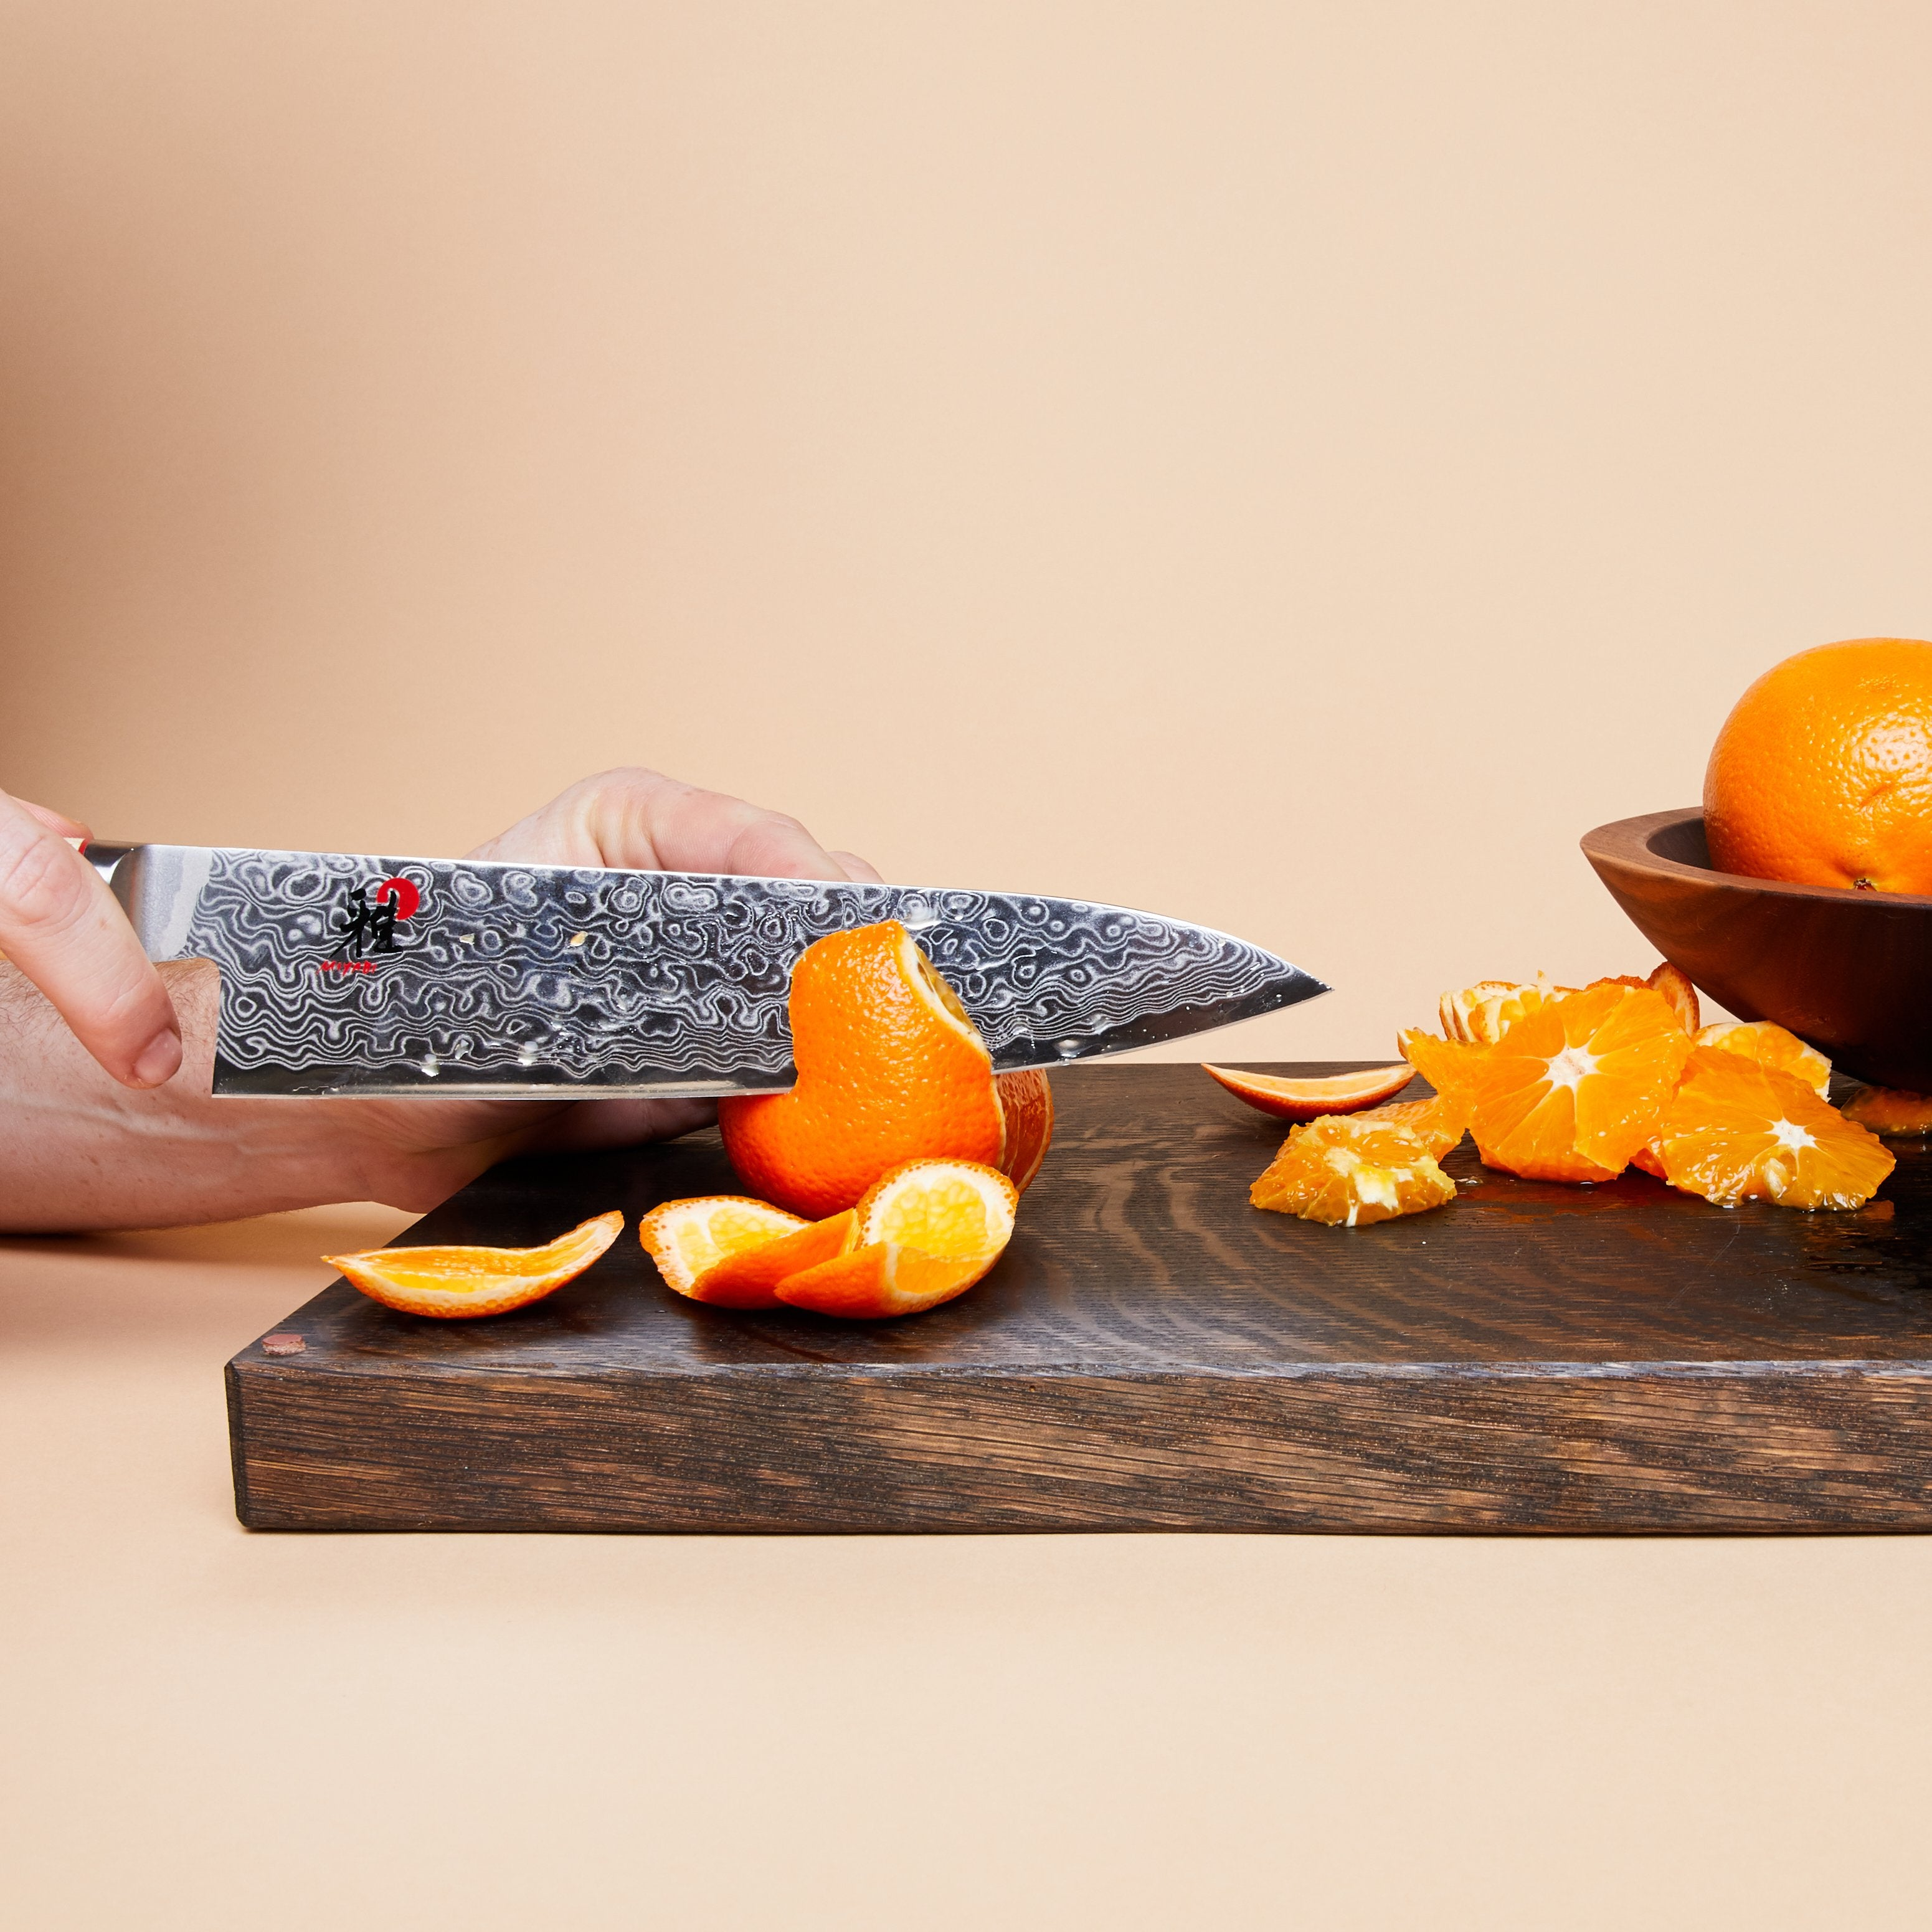 Learn the process of making cutting boards by Andy McFate